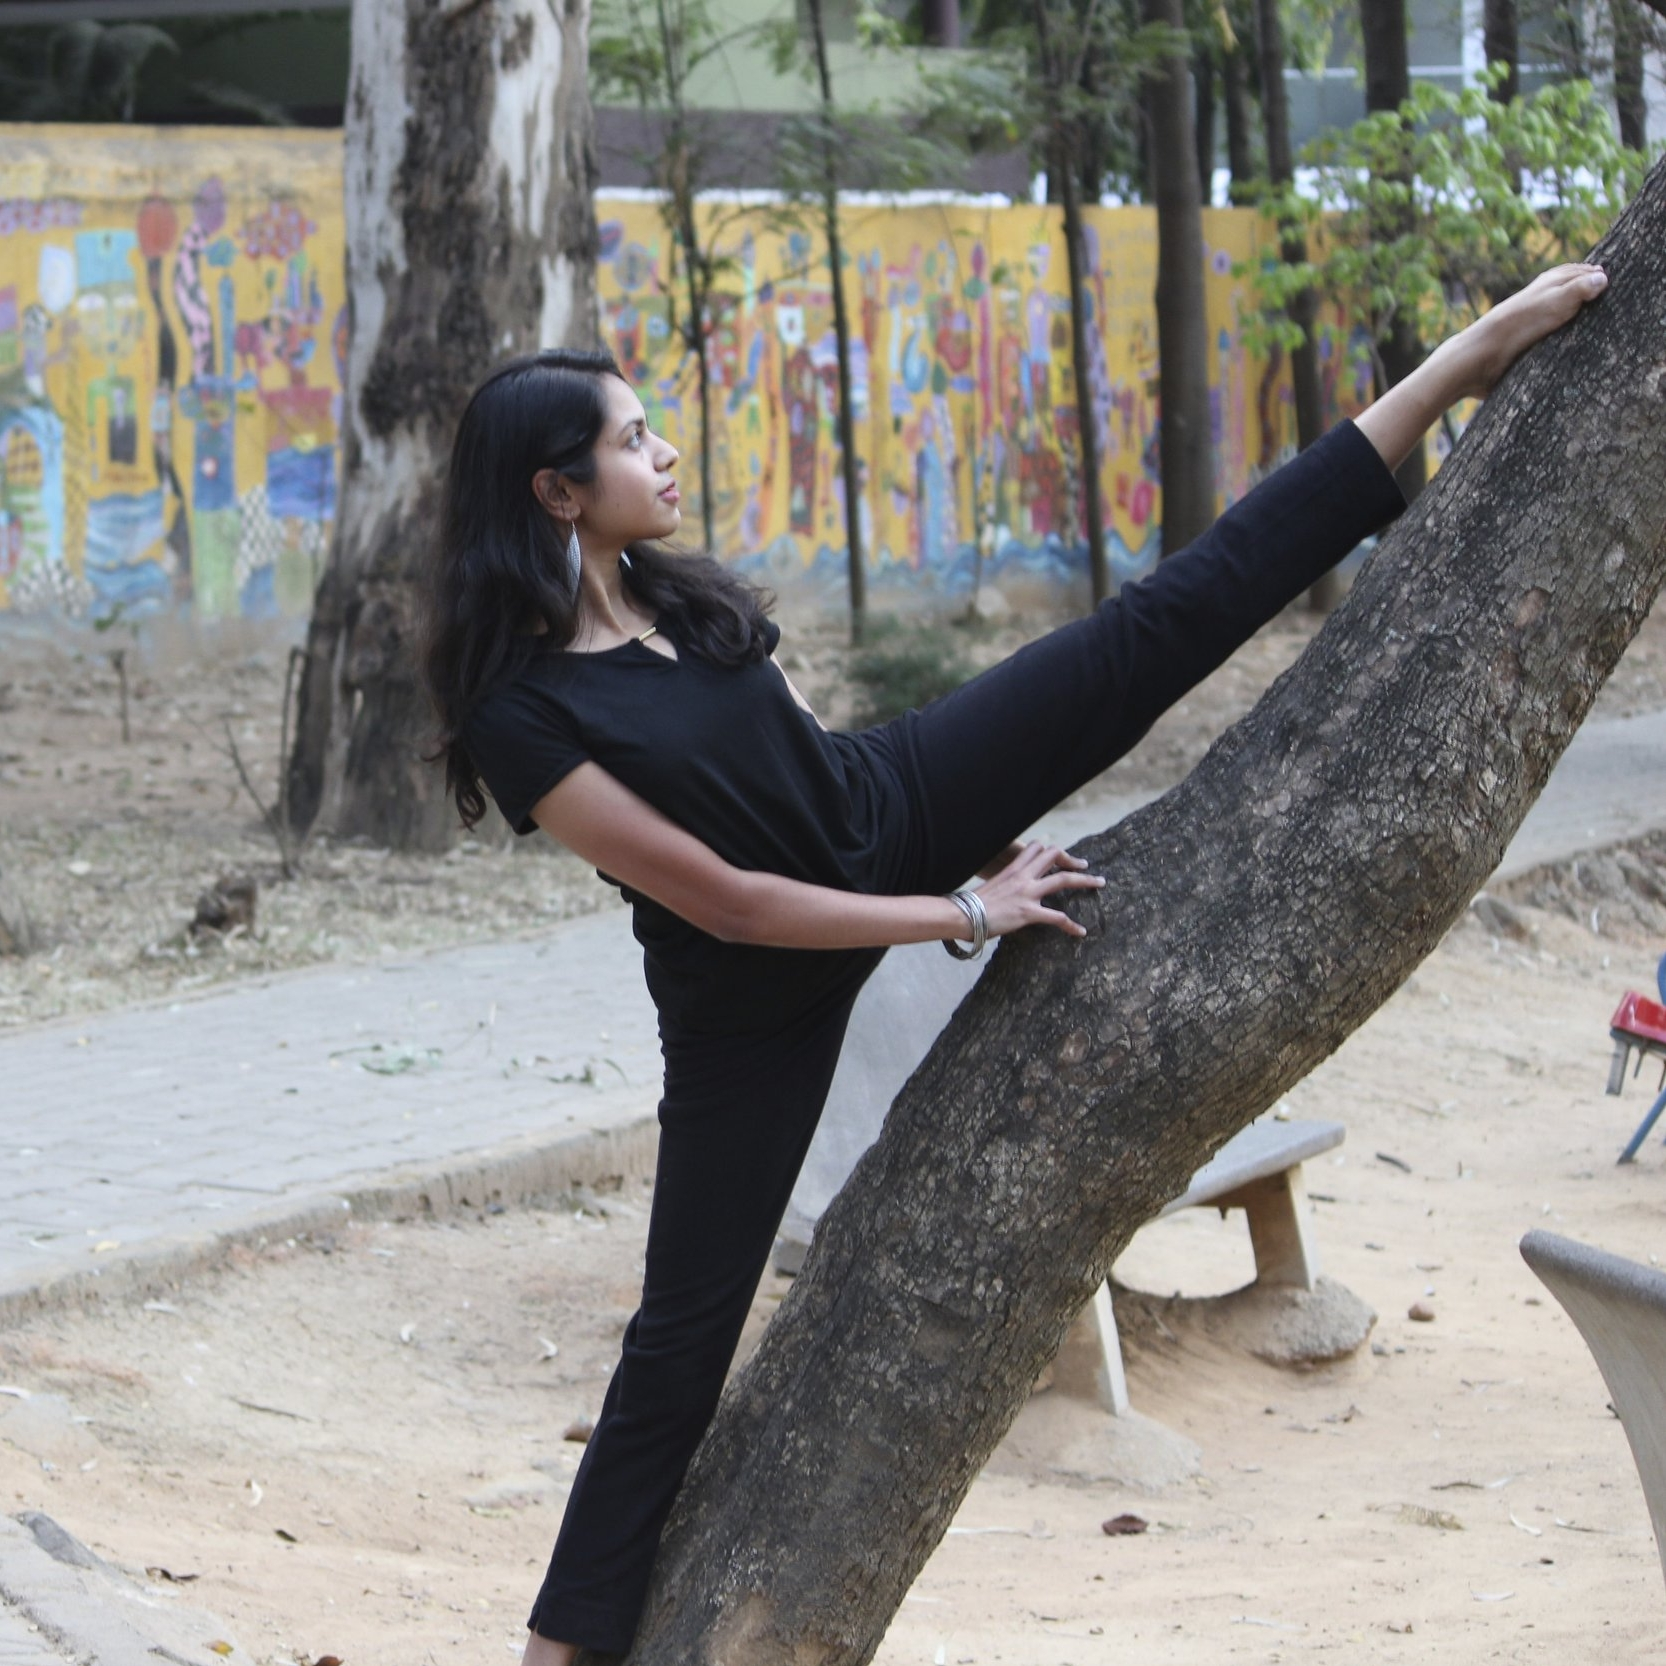 Shashwati Claudina da Cunha / arts + academics  searching for stillness in movement